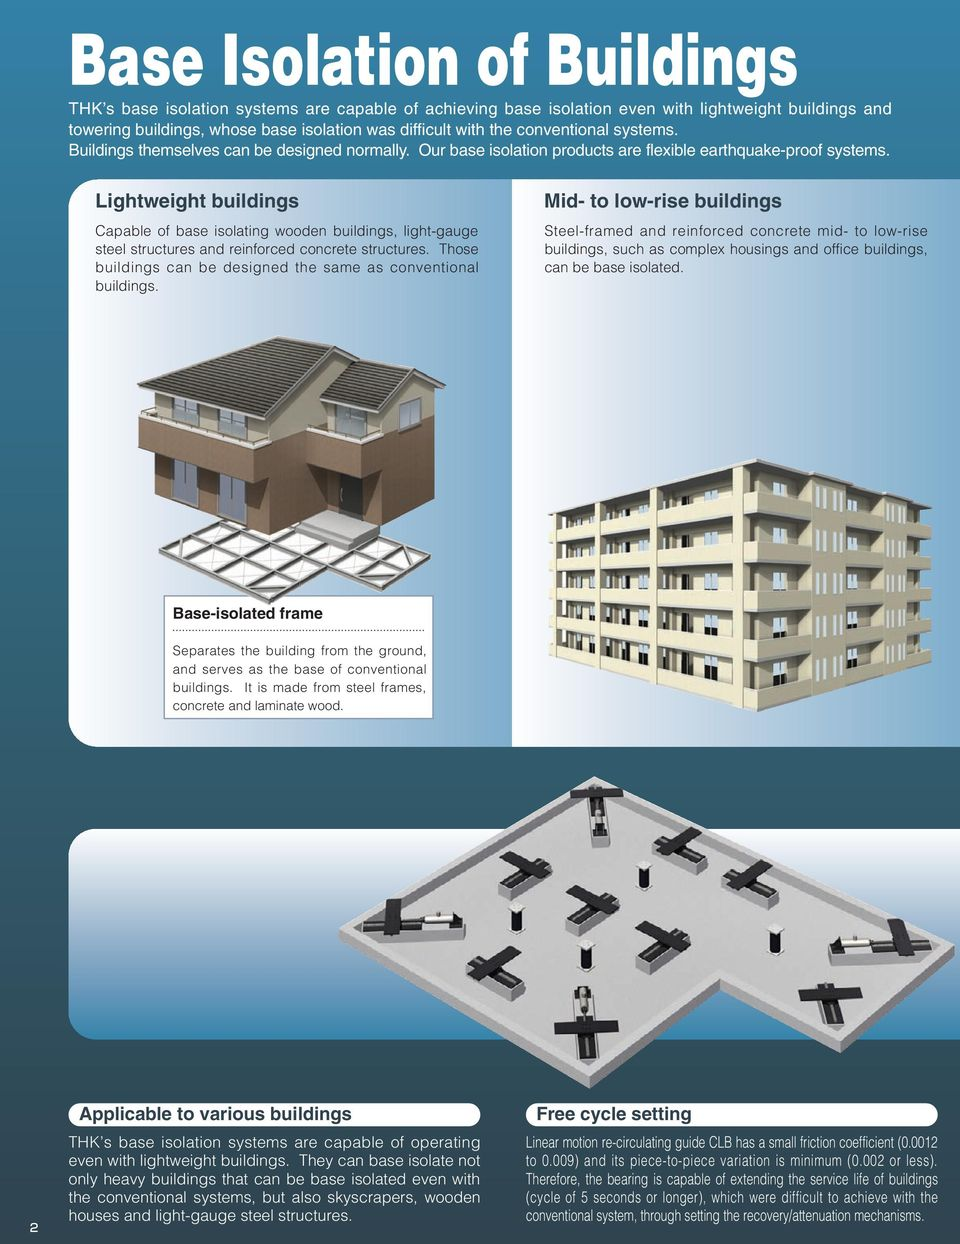 Lightweight buildings Capable of base isolating wooden buildings, light-gauge steel structures and reinforced concrete structures. Those buildings can be designed the same as conventional buildings.